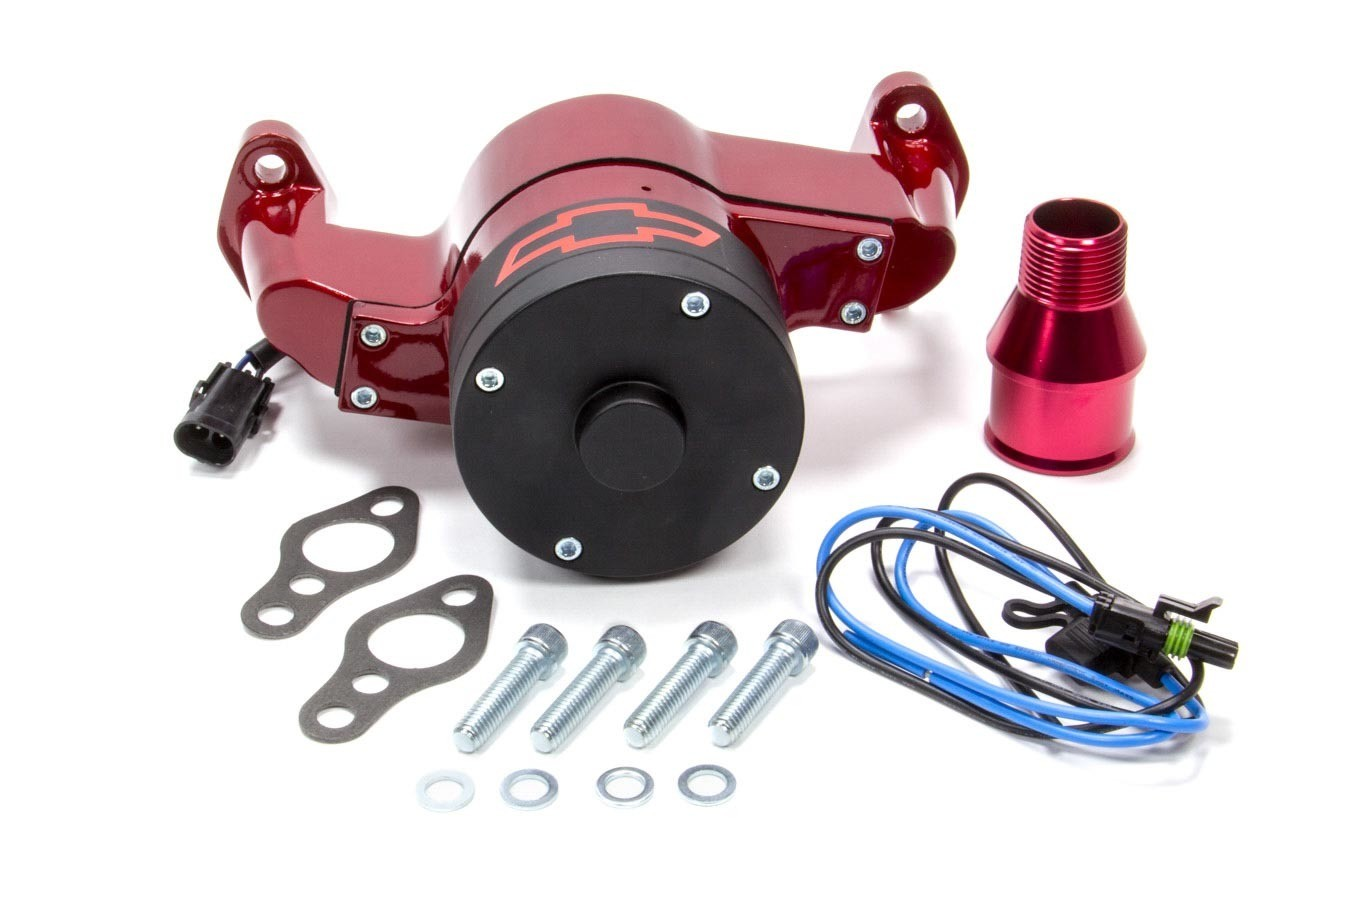 Proform 141-652 Water Pump, Electric, 1 in NPT Female Inlet, Adapter / Gaskets / Hardware, Bowtie Logo, Billet Aluminum, Red Powder Coat, Small Block Chevy, Kit